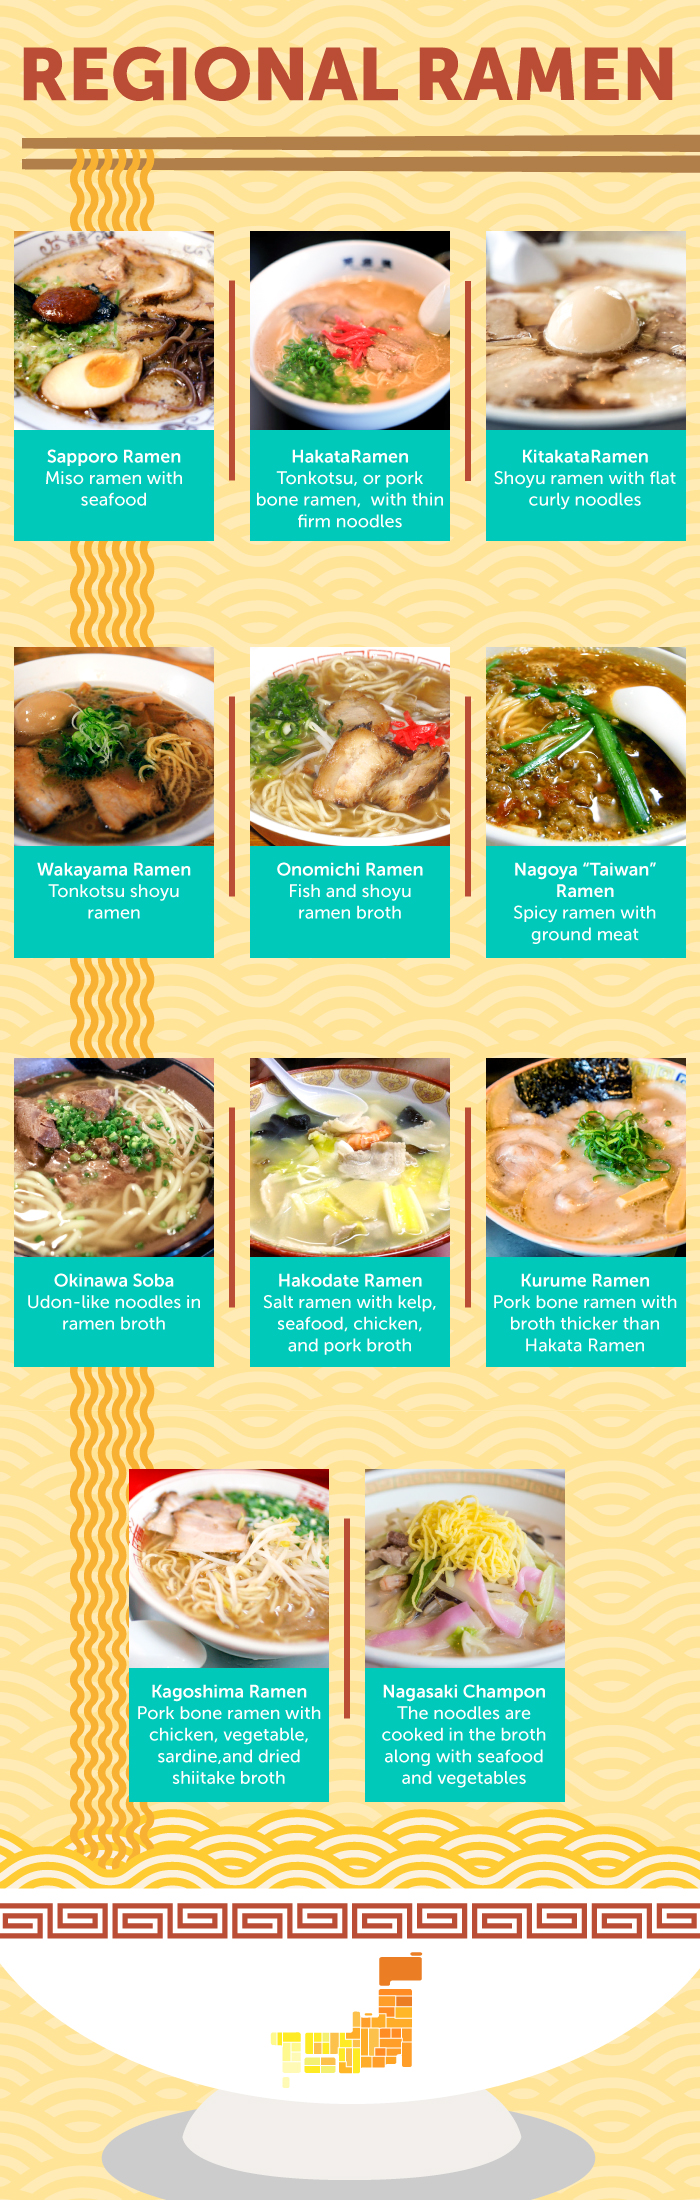 GURUNAVI Japan Restaurant Guide | Let's experience Japan